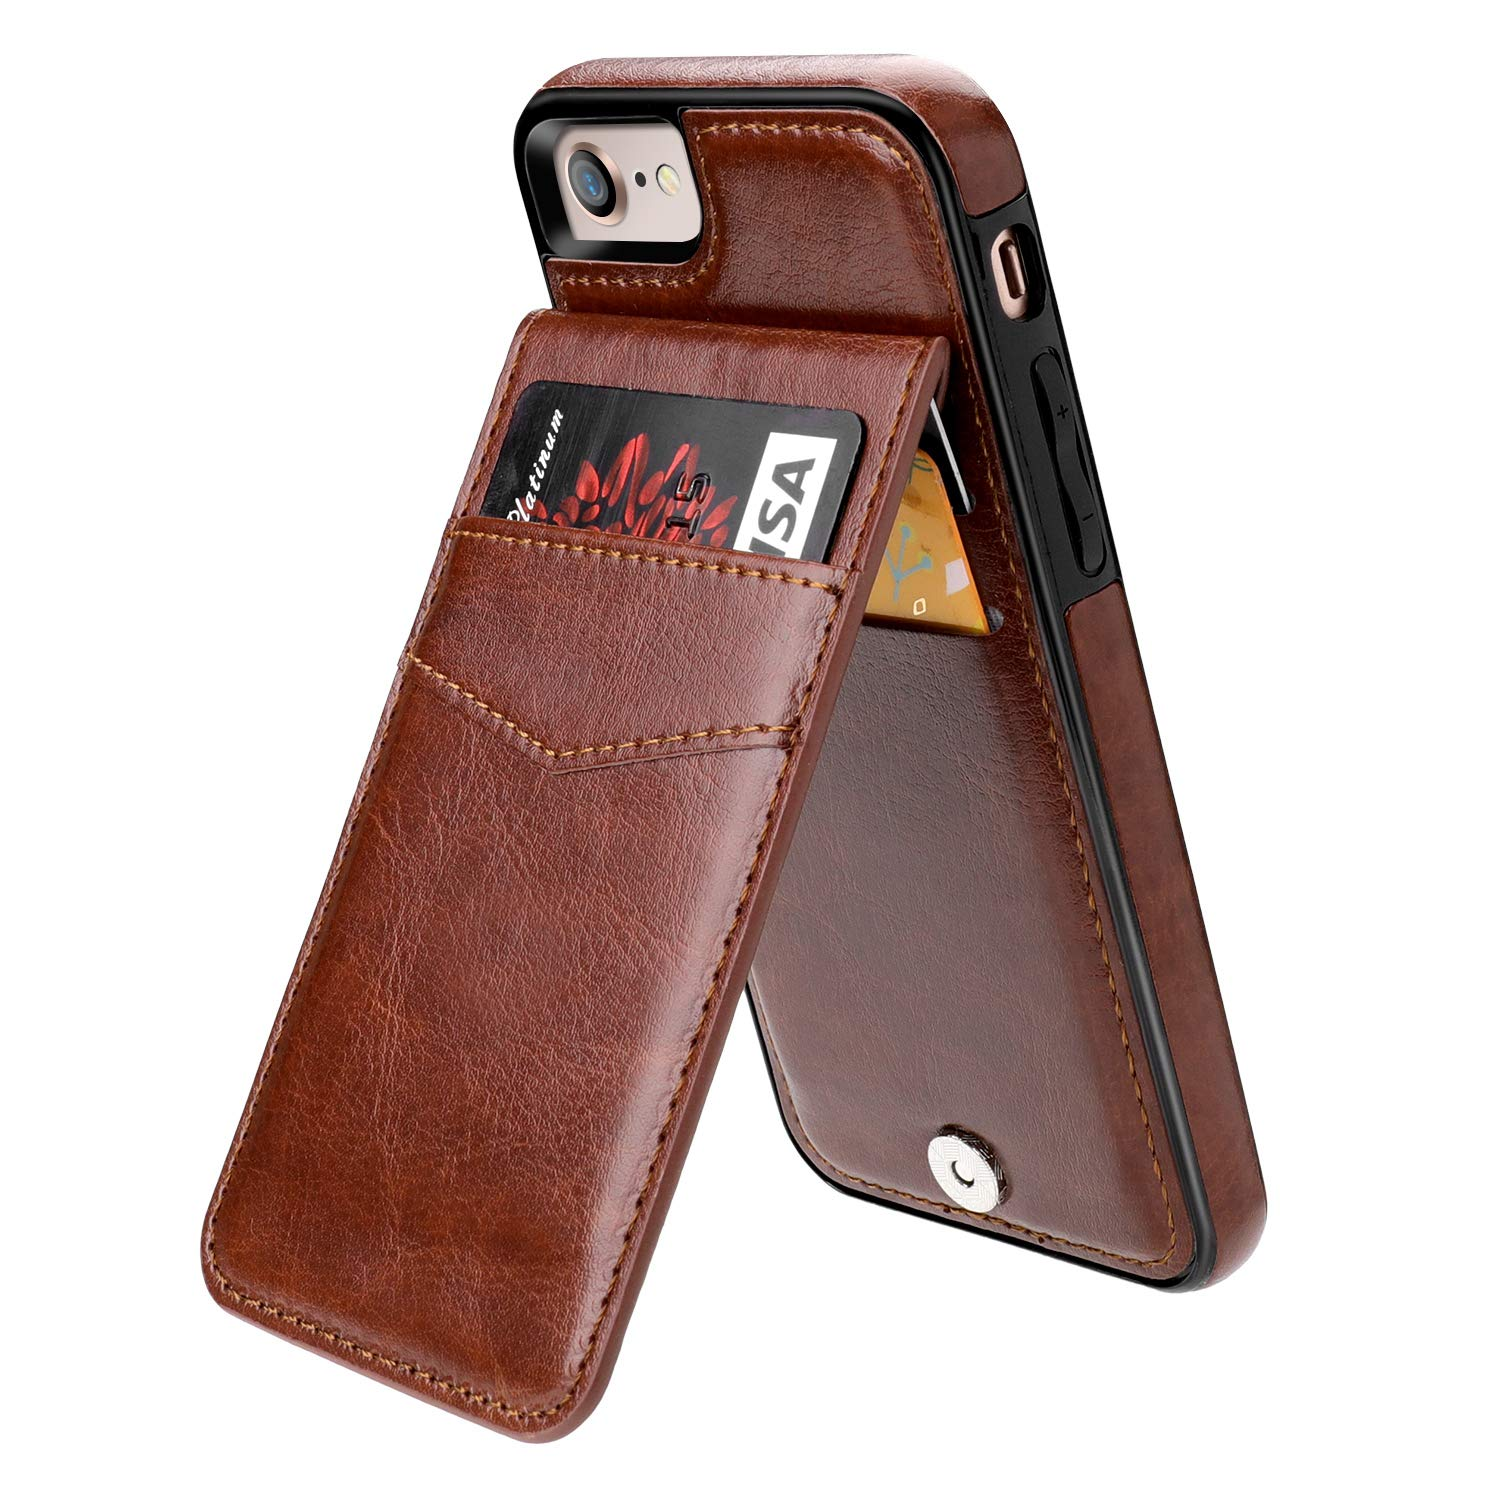 iPhone 7 iPhone 8 Case Wallet with Credit Card Holder, KIHUWEY Premium Leather Magnetic Clasp Kickstand Heavy Duty Protective Cover for iPhone 7/8 4.7 Inch(Brown) by KIHUWEY